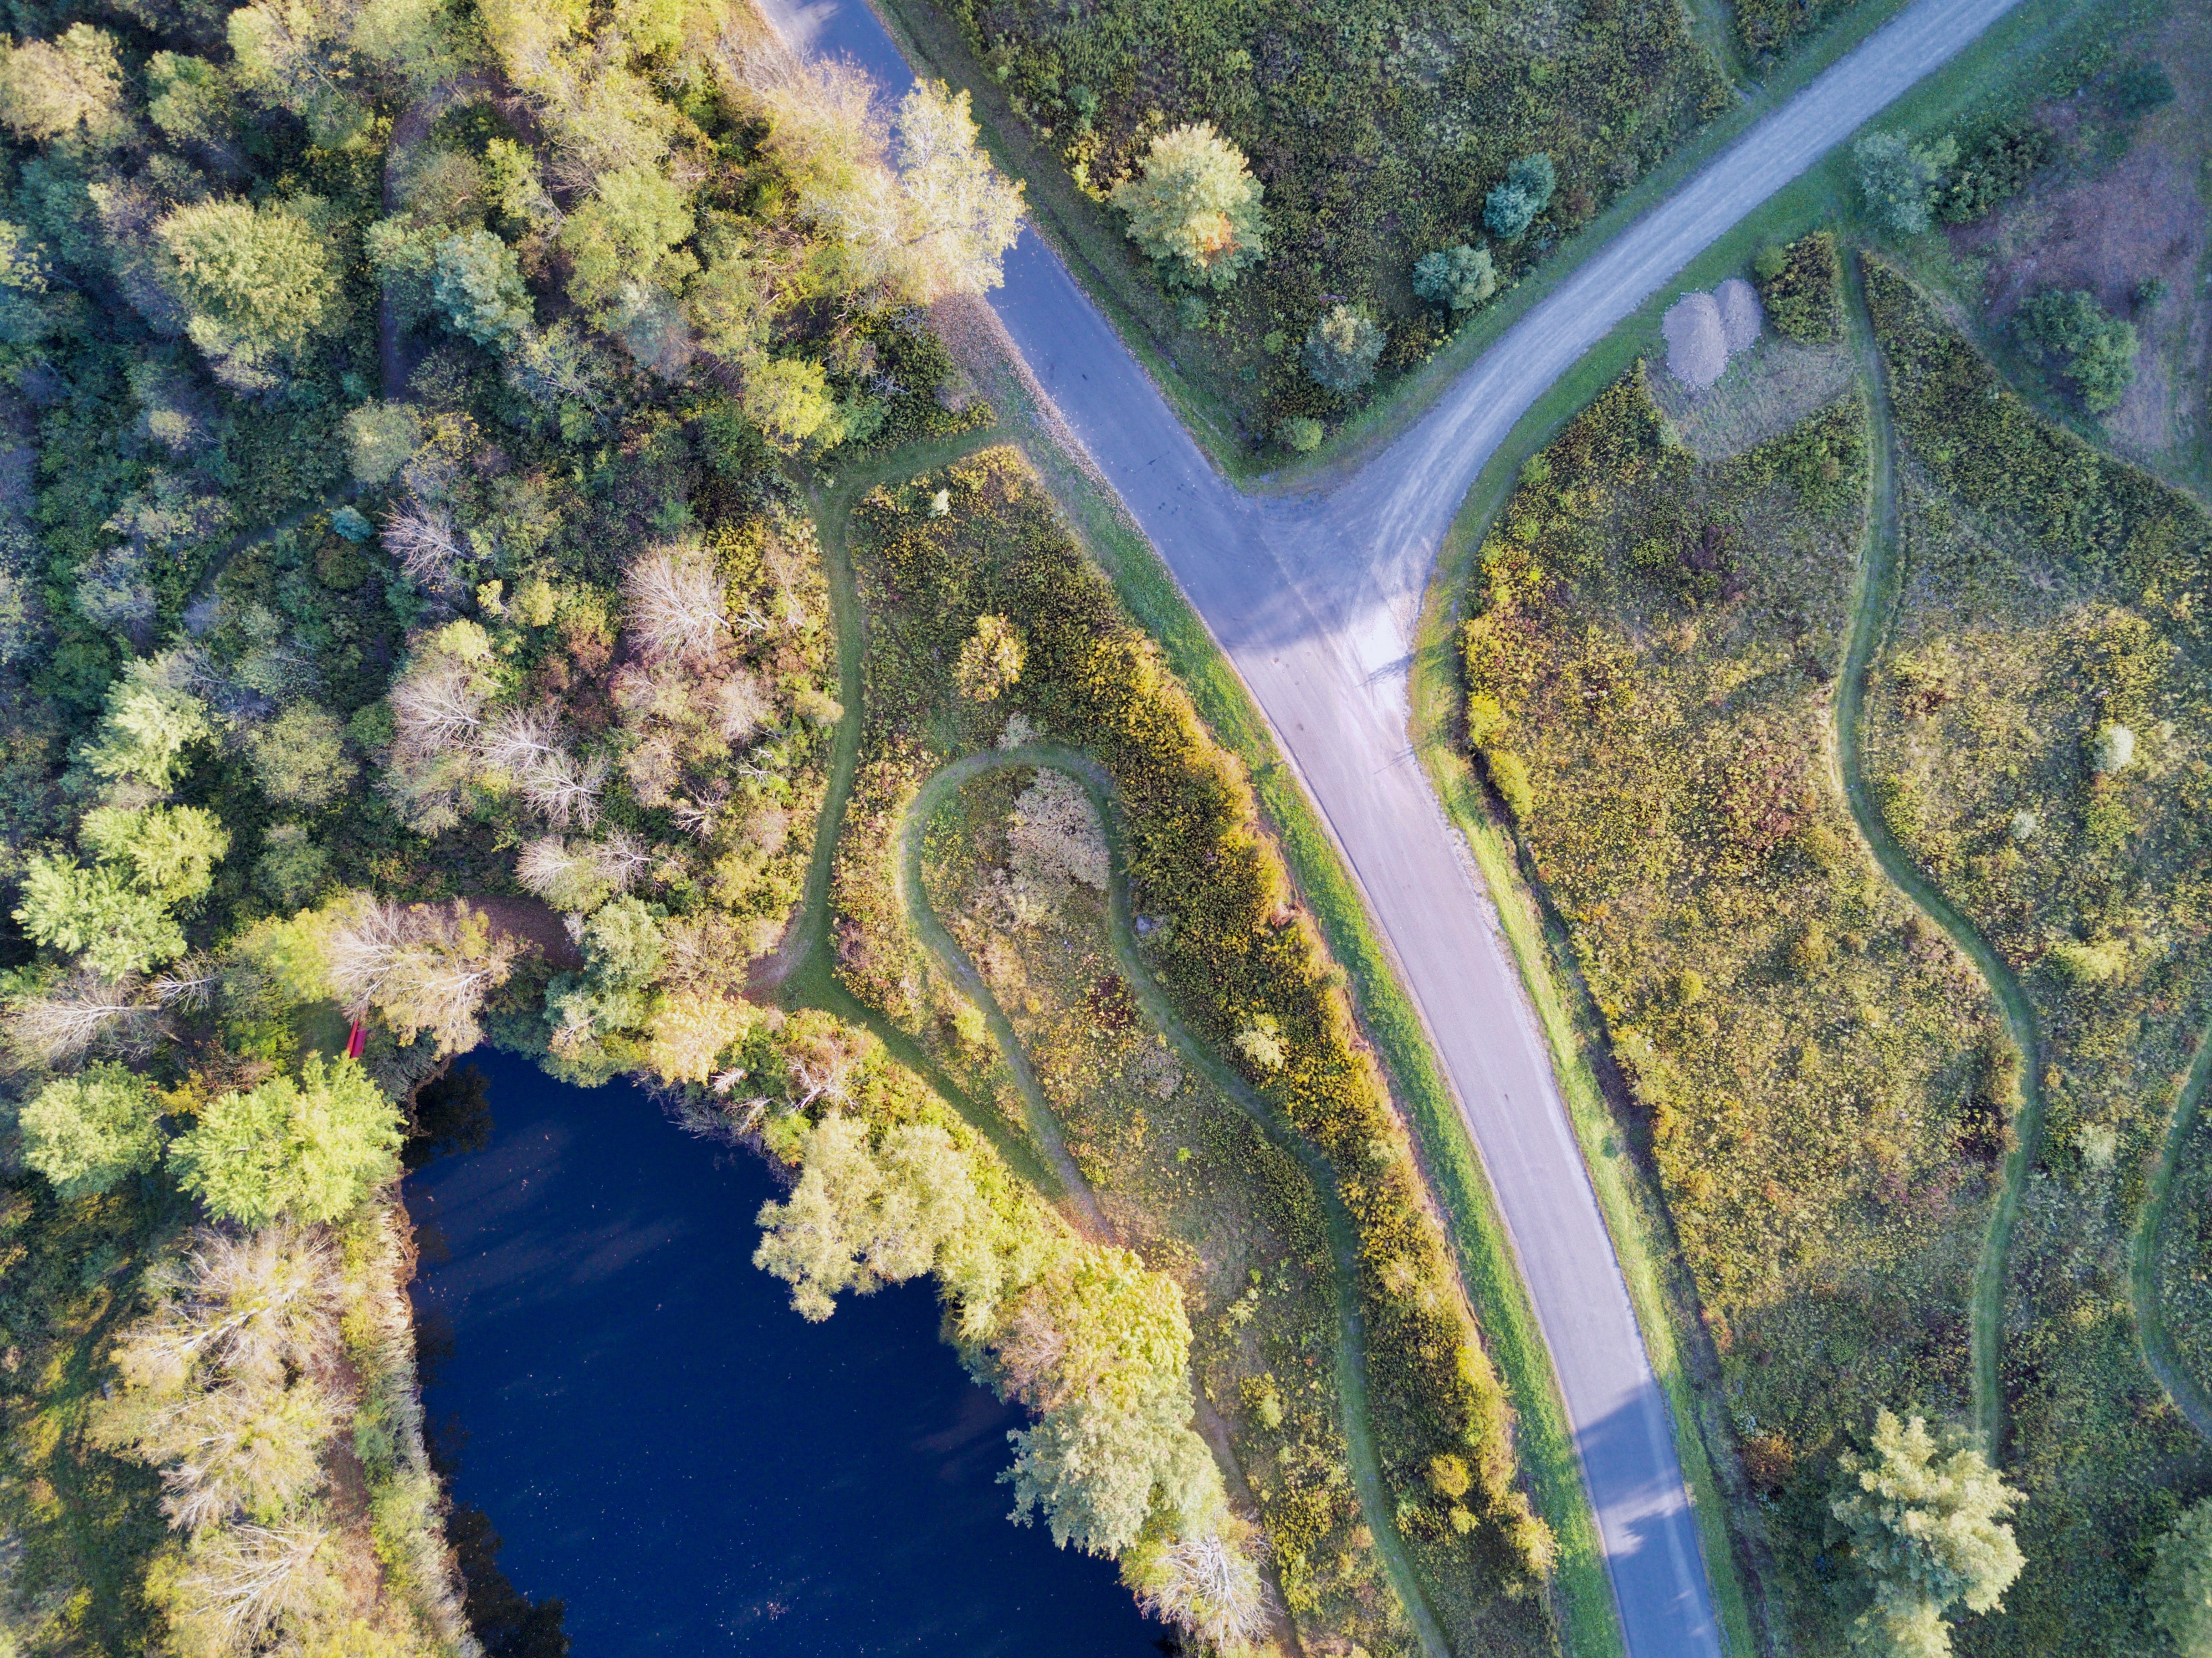 aerial photography of crossroad covered in trees